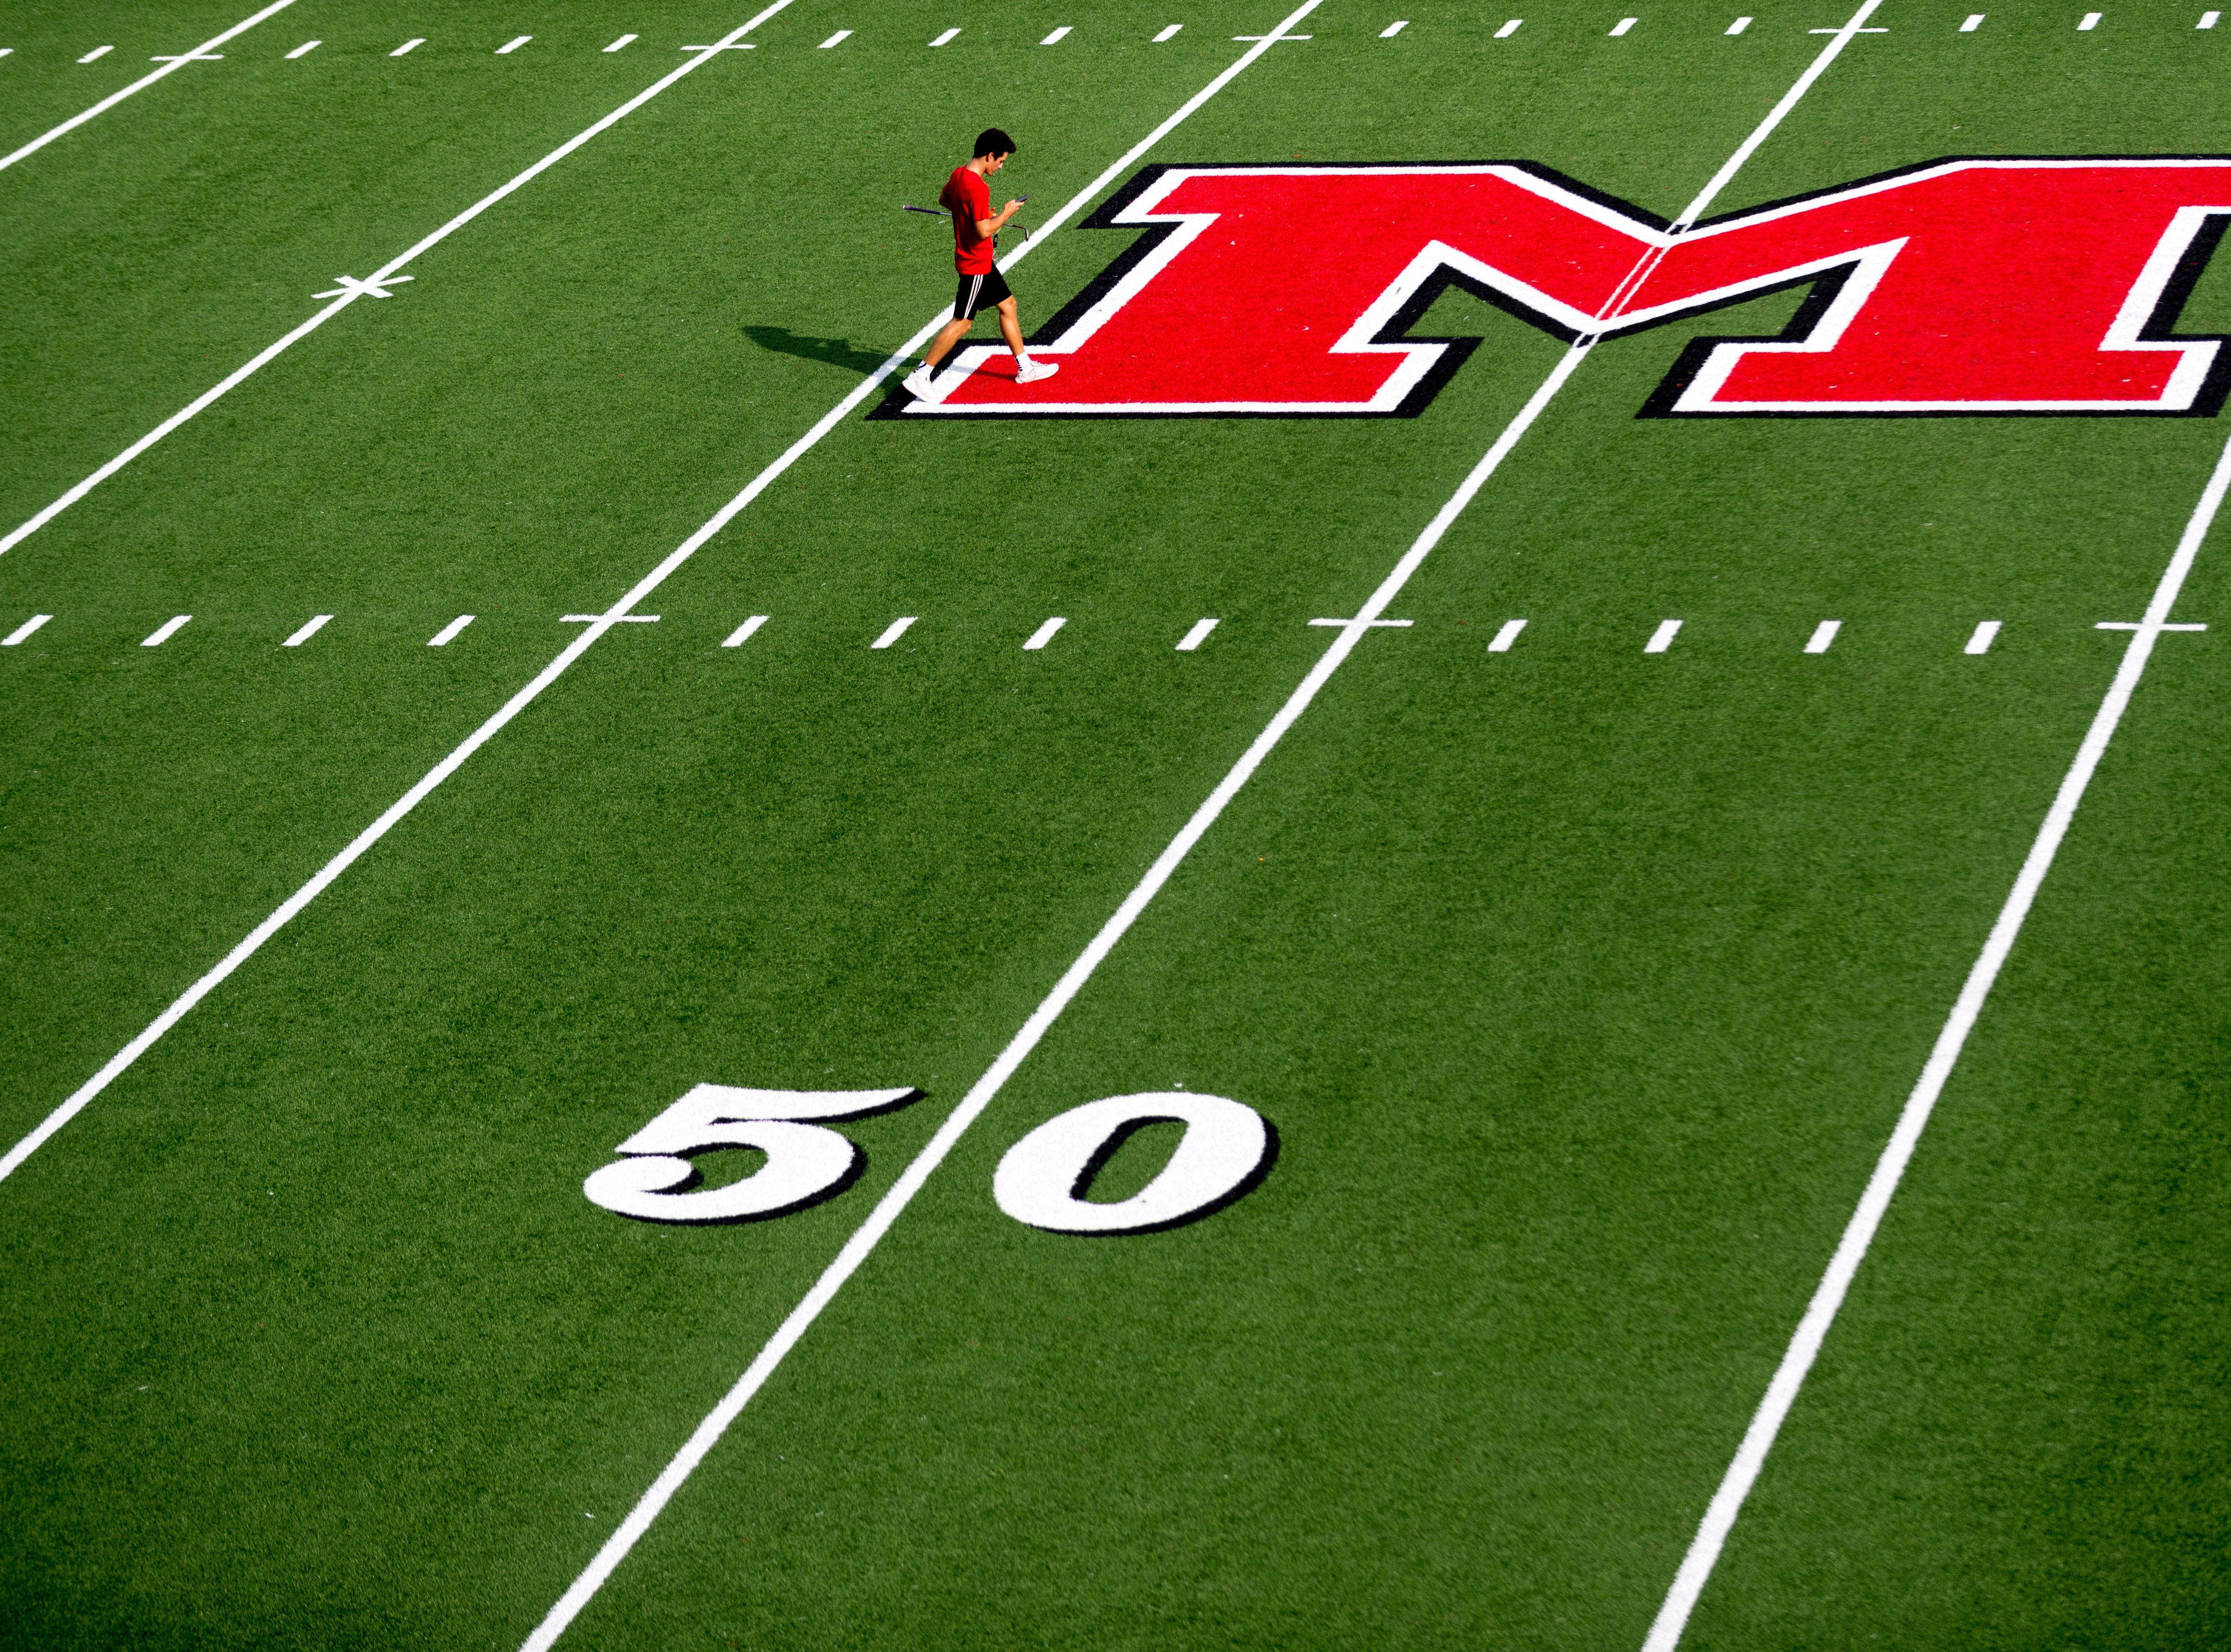 A Maryville team member walks across the field during a football game between Maryville and Oakland at Maryville High School in Maryville, Tennessee on Friday, August 24, 2018.